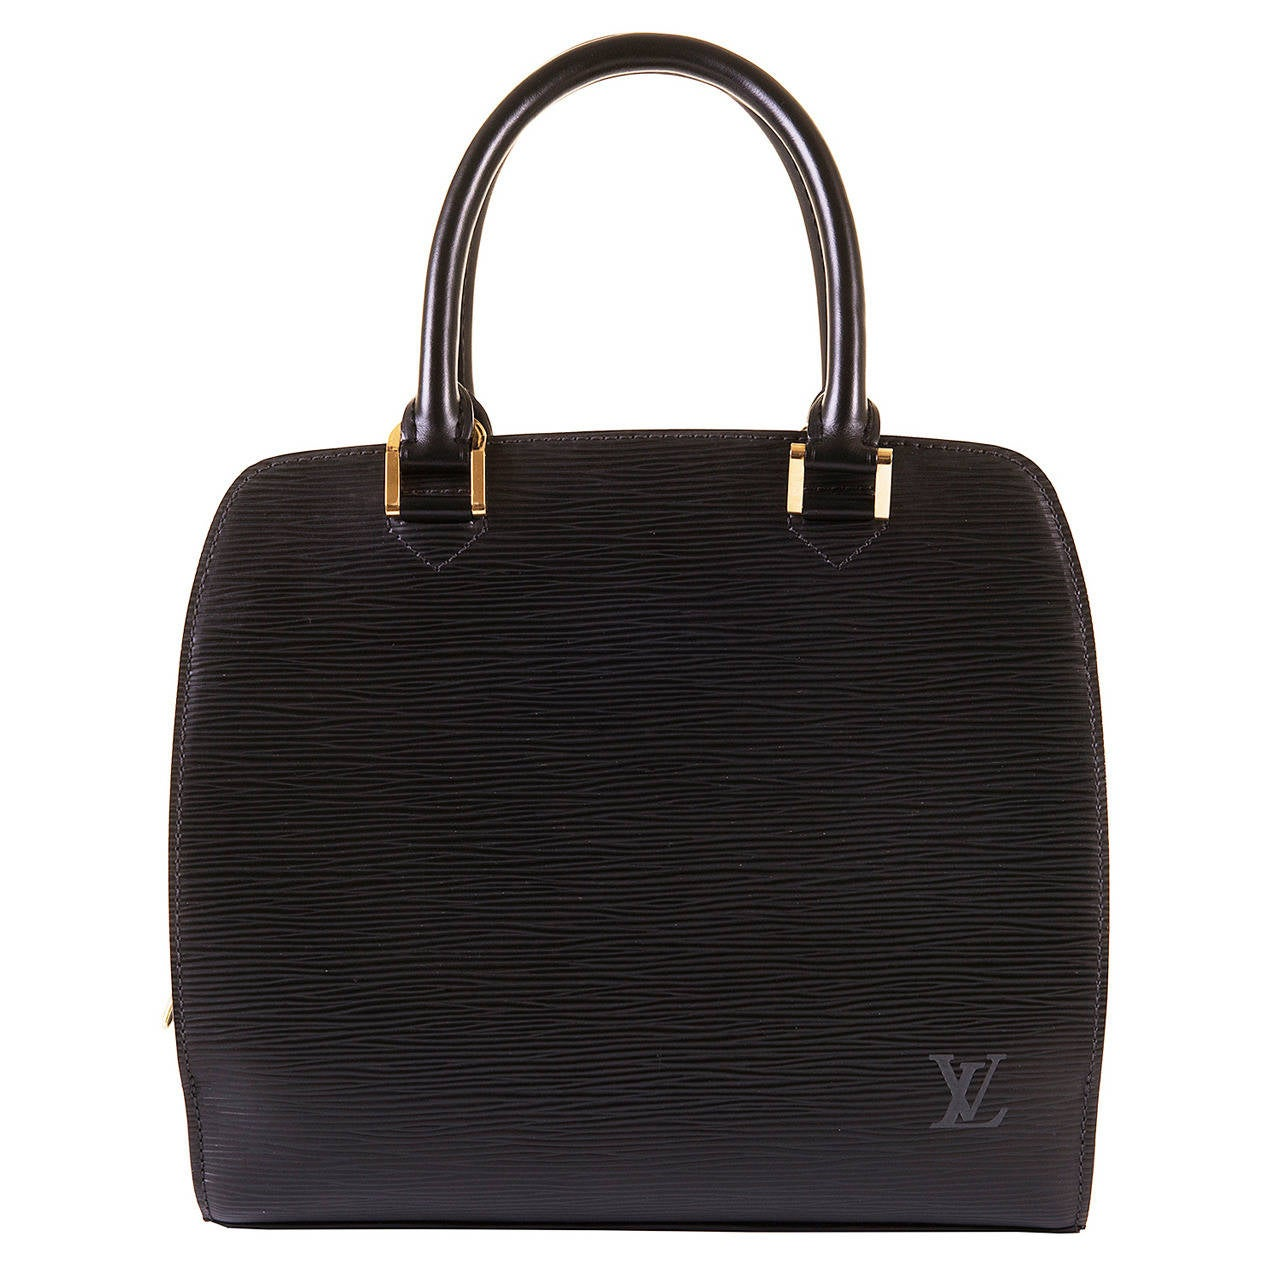 A Super Louis Vuitton 'Pont-Neuf' 25cm Black Epi Bag 1